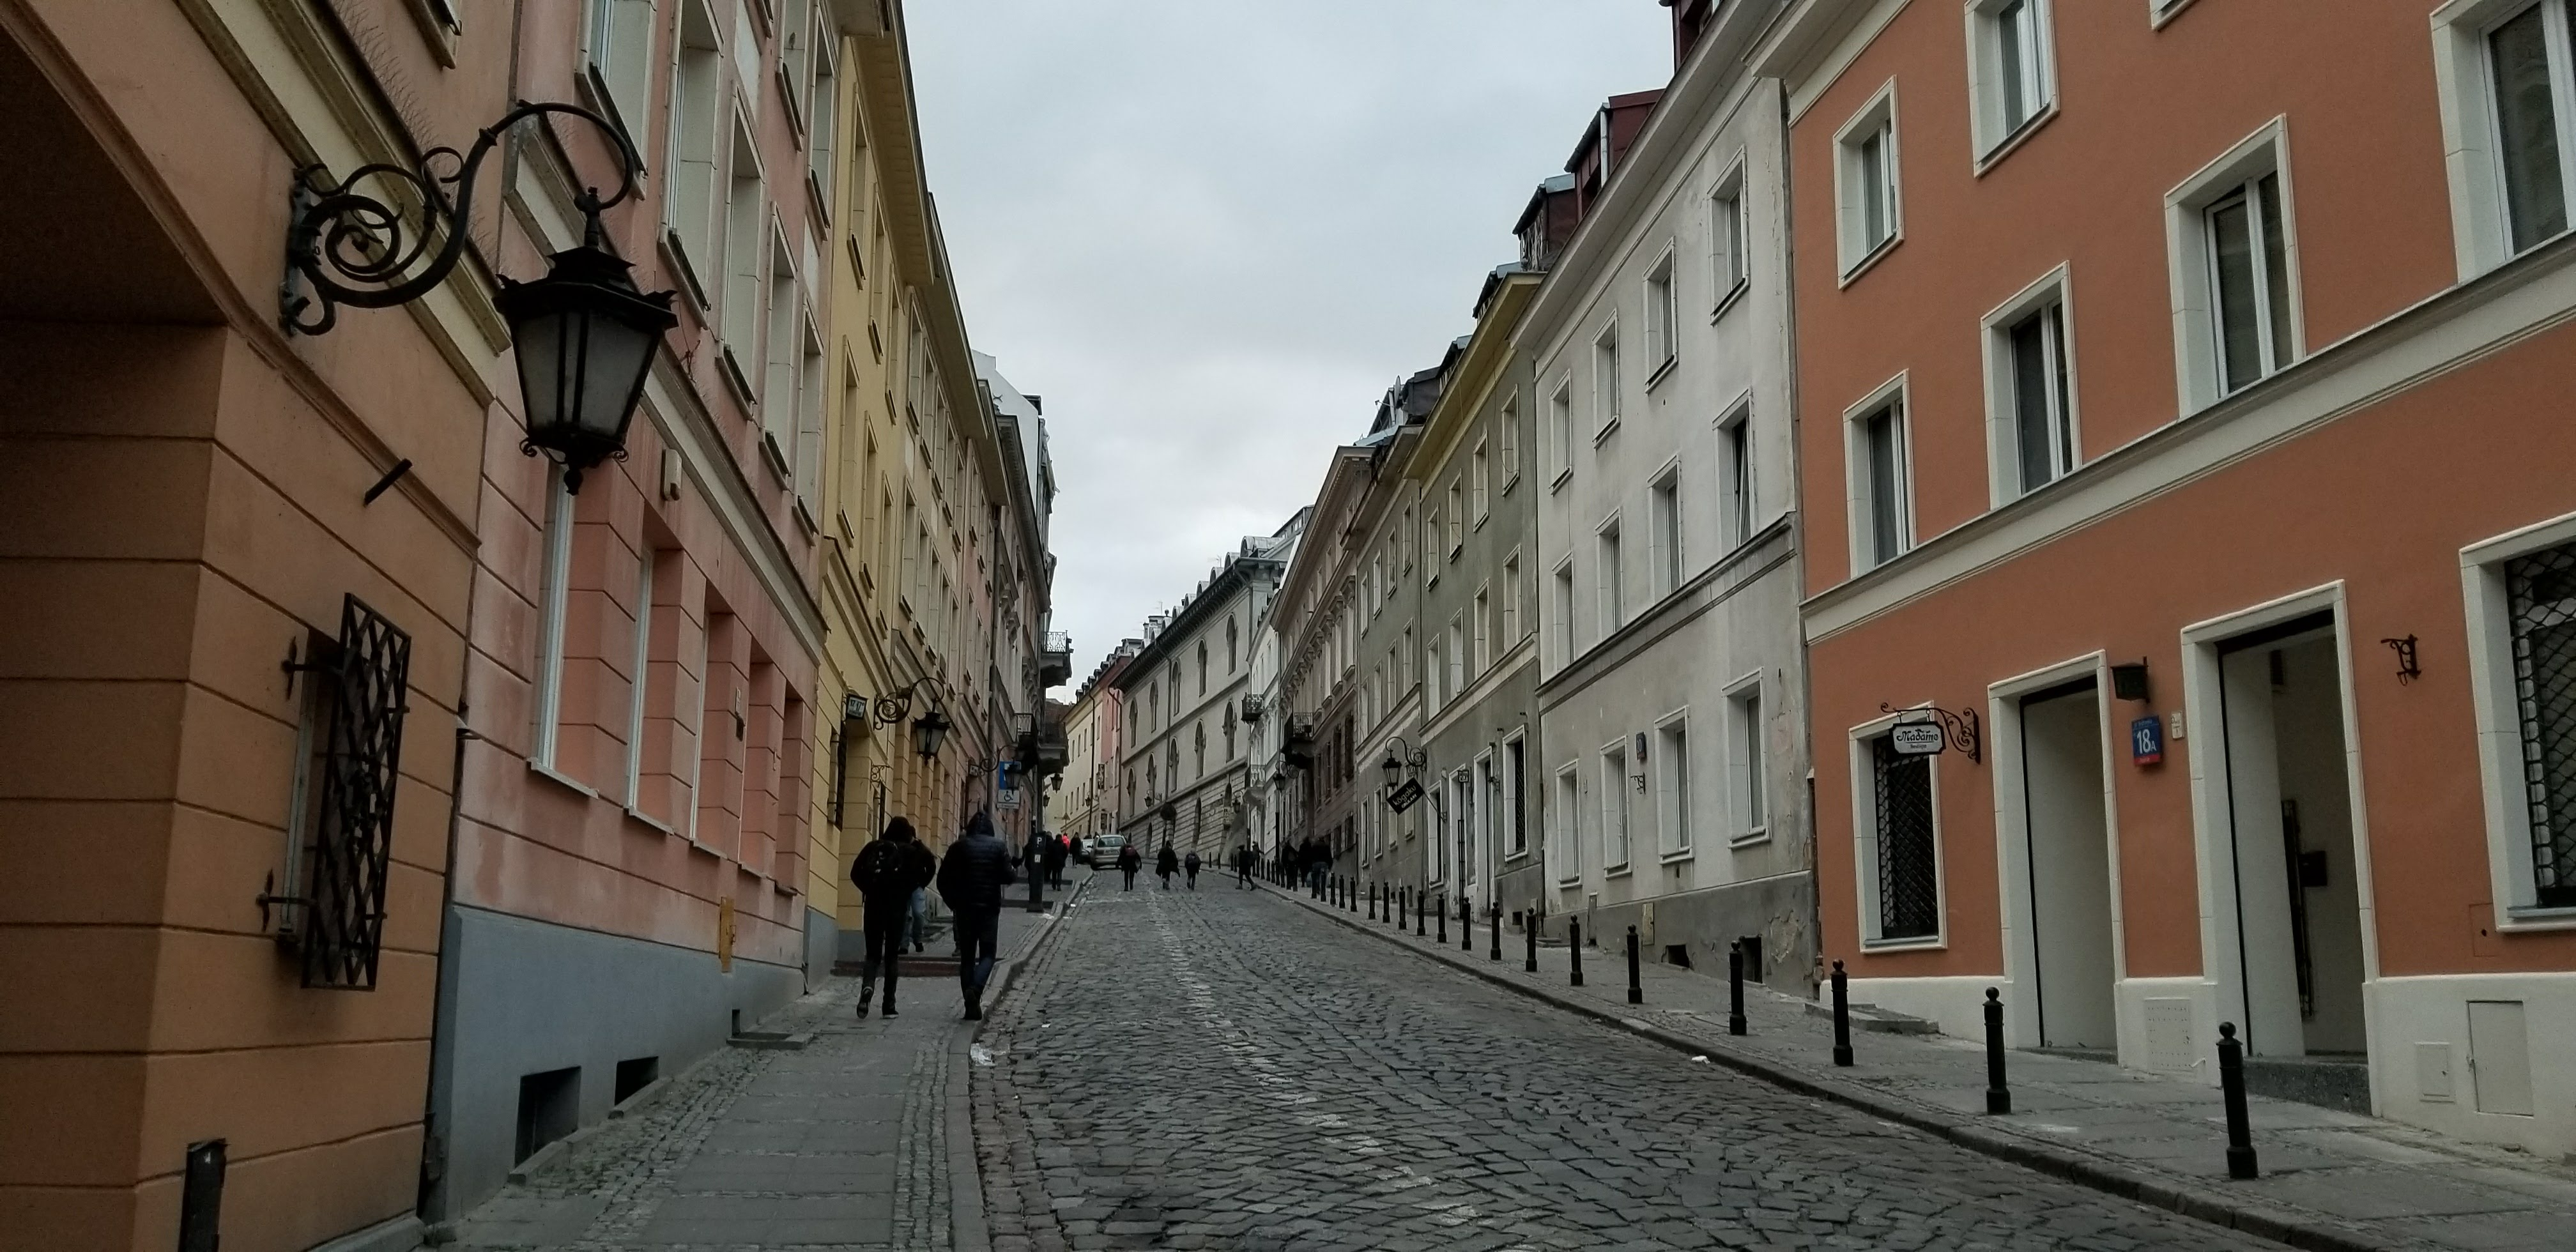 CAPAStudyAbroad_London_Fall2017_From Thaddeus Kaszuba - Vibrant Colors in a Lane in Old Town Warsaw, Poland.jpg